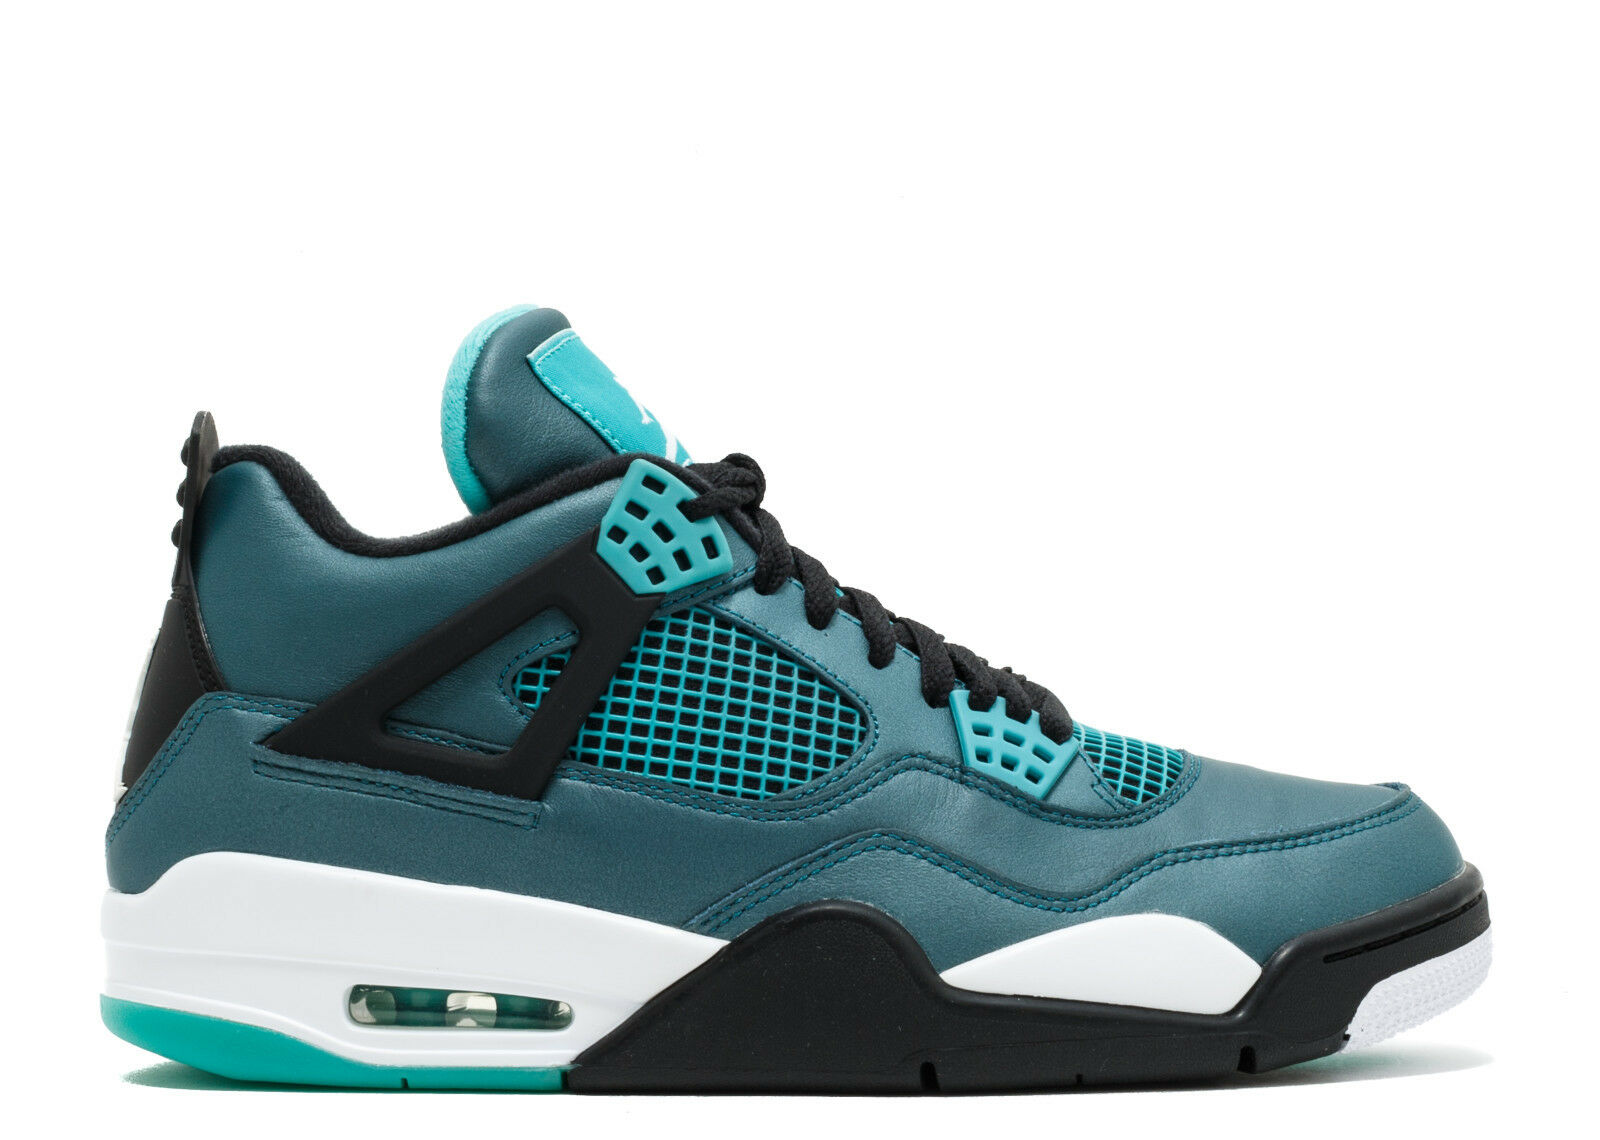 DS Air Jordan Retro 4 Teal Size 9.5